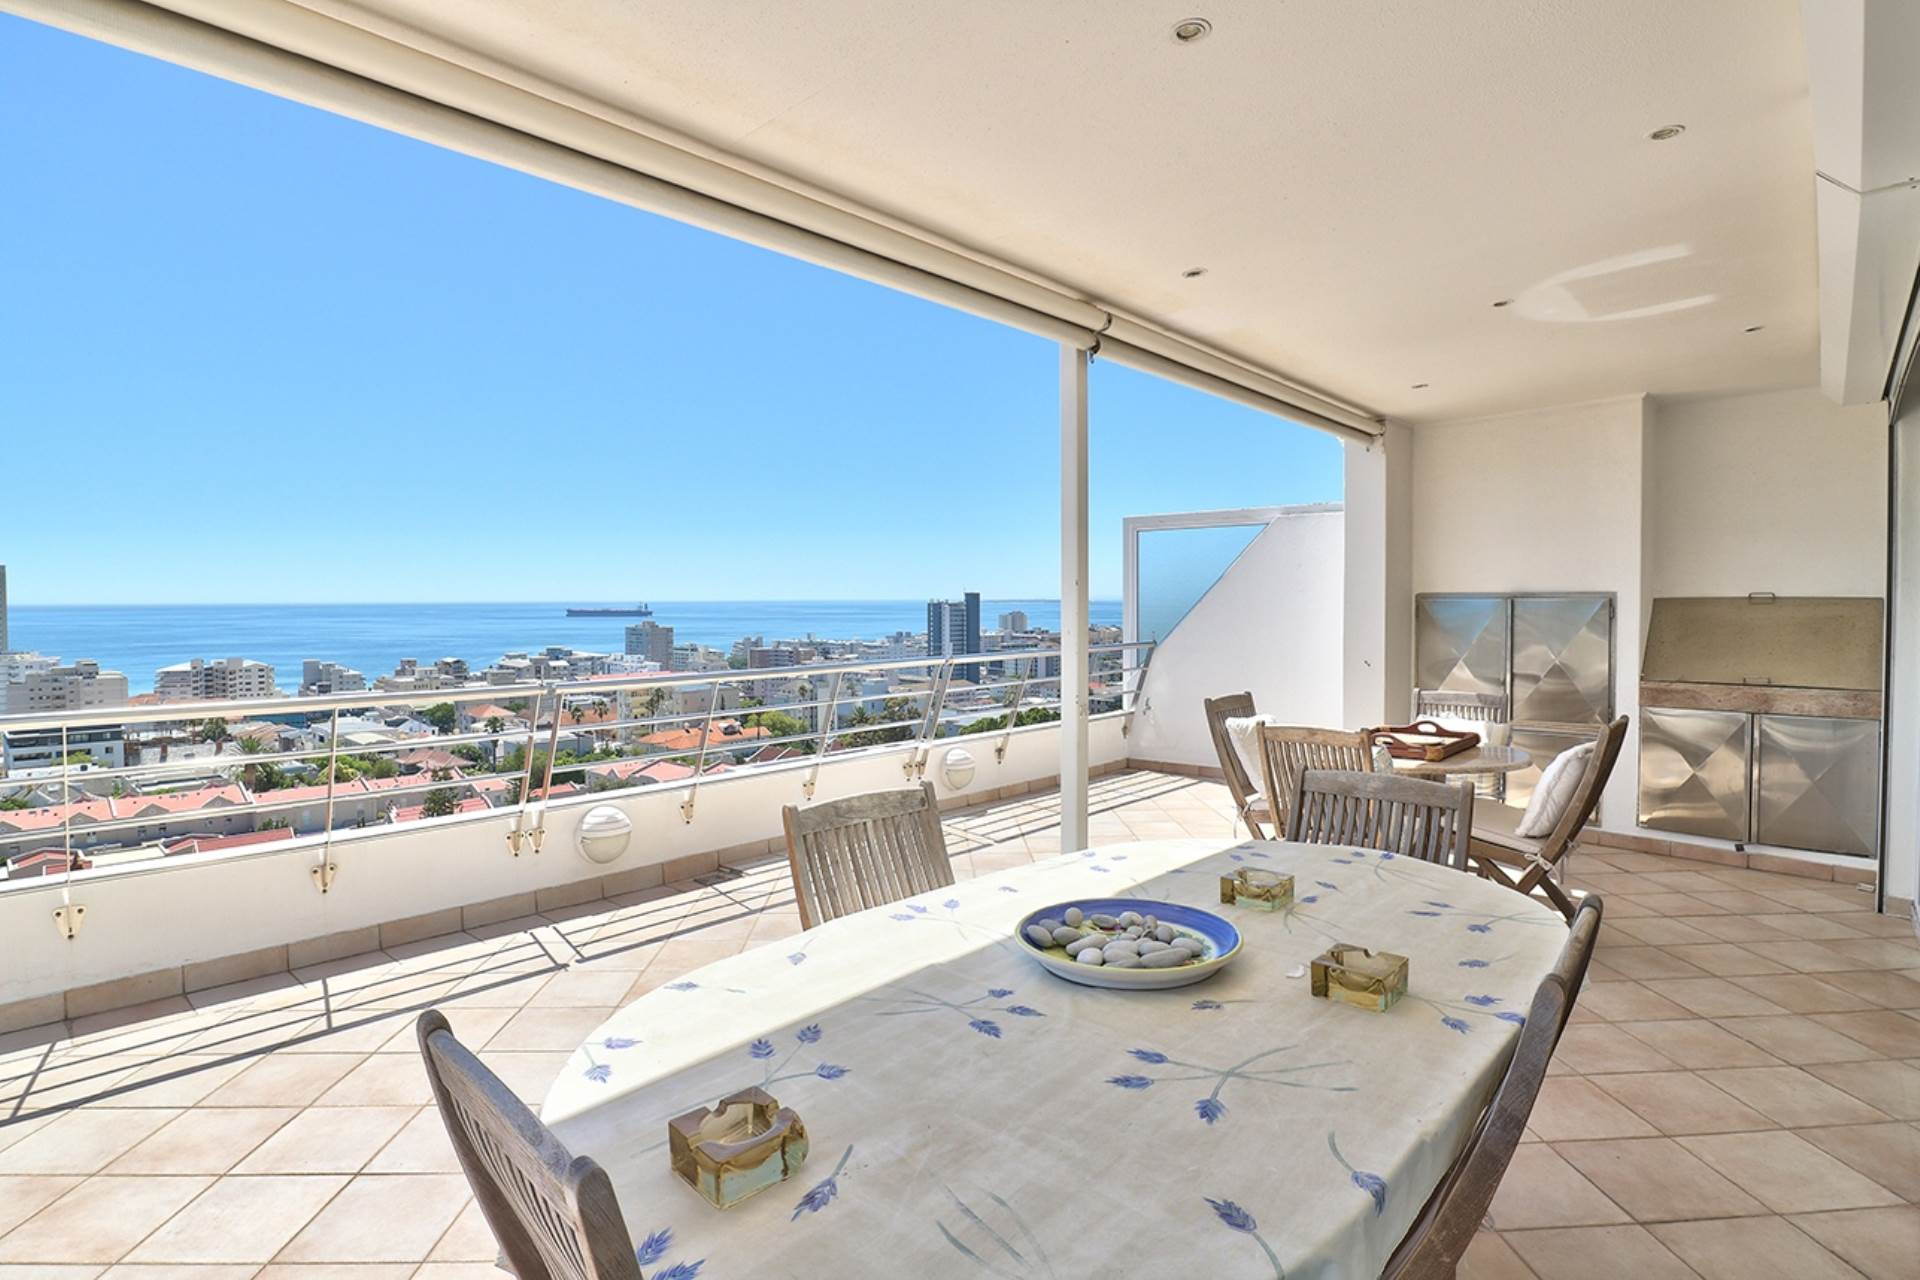 Penthouse For Sale In Fresnaye, Cape Town, Western Cape for R ...